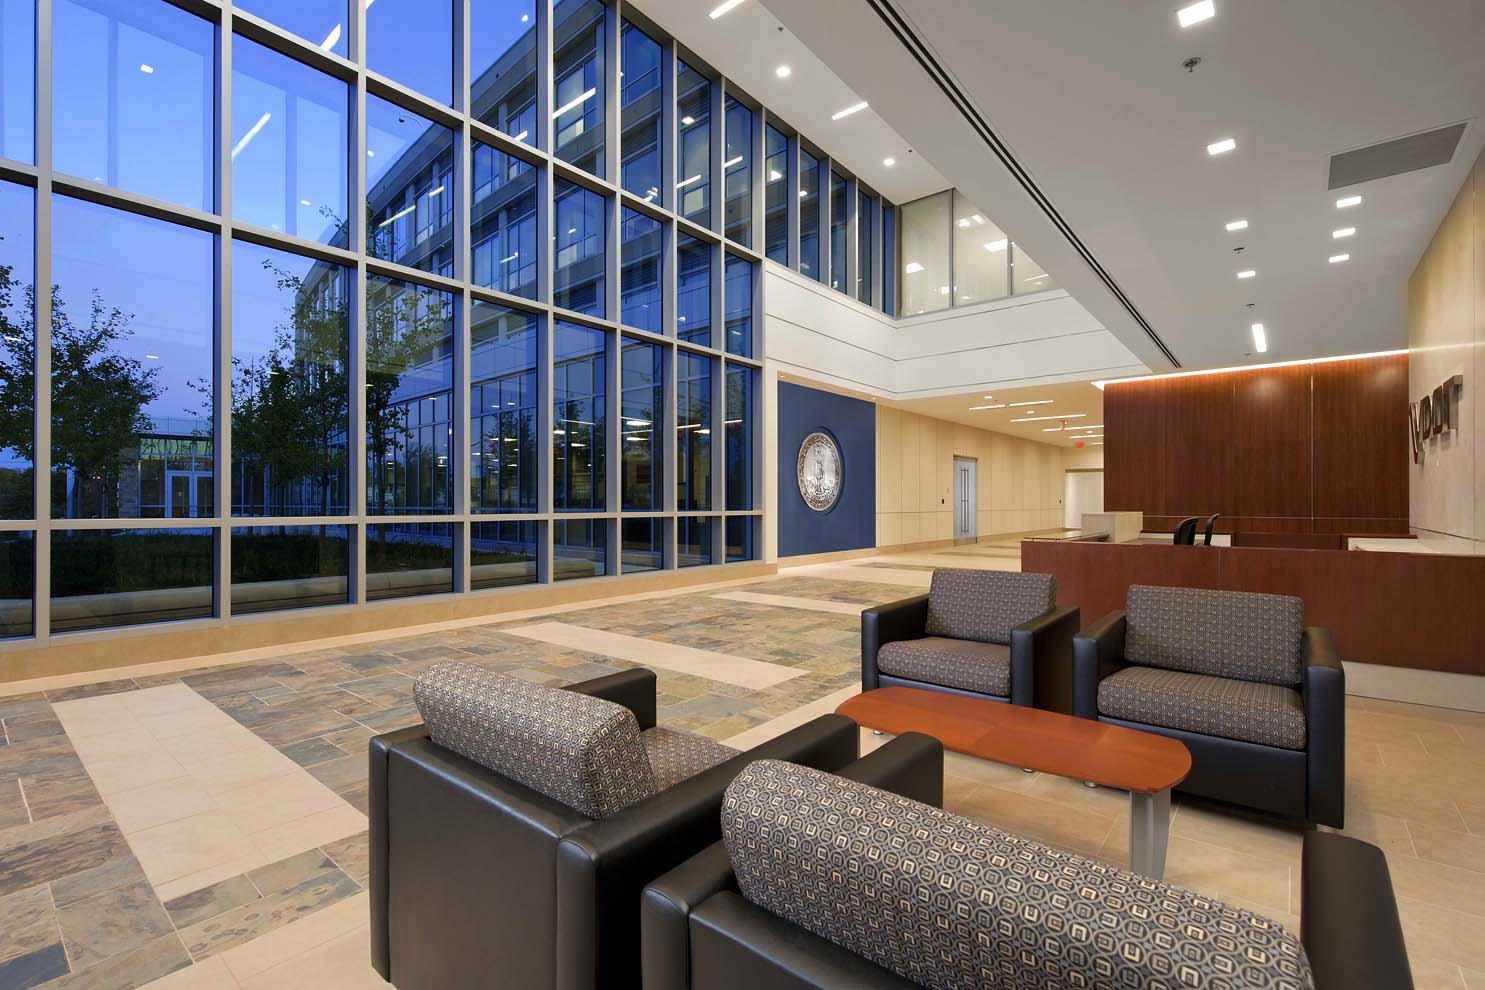 Fairfax, VAArchitect: Wisnewski Blair & Associates, Ltd.(now HGA Mid-Atlantic, Inc.)GC: EEREEDMEP Engineer: GHT Limited